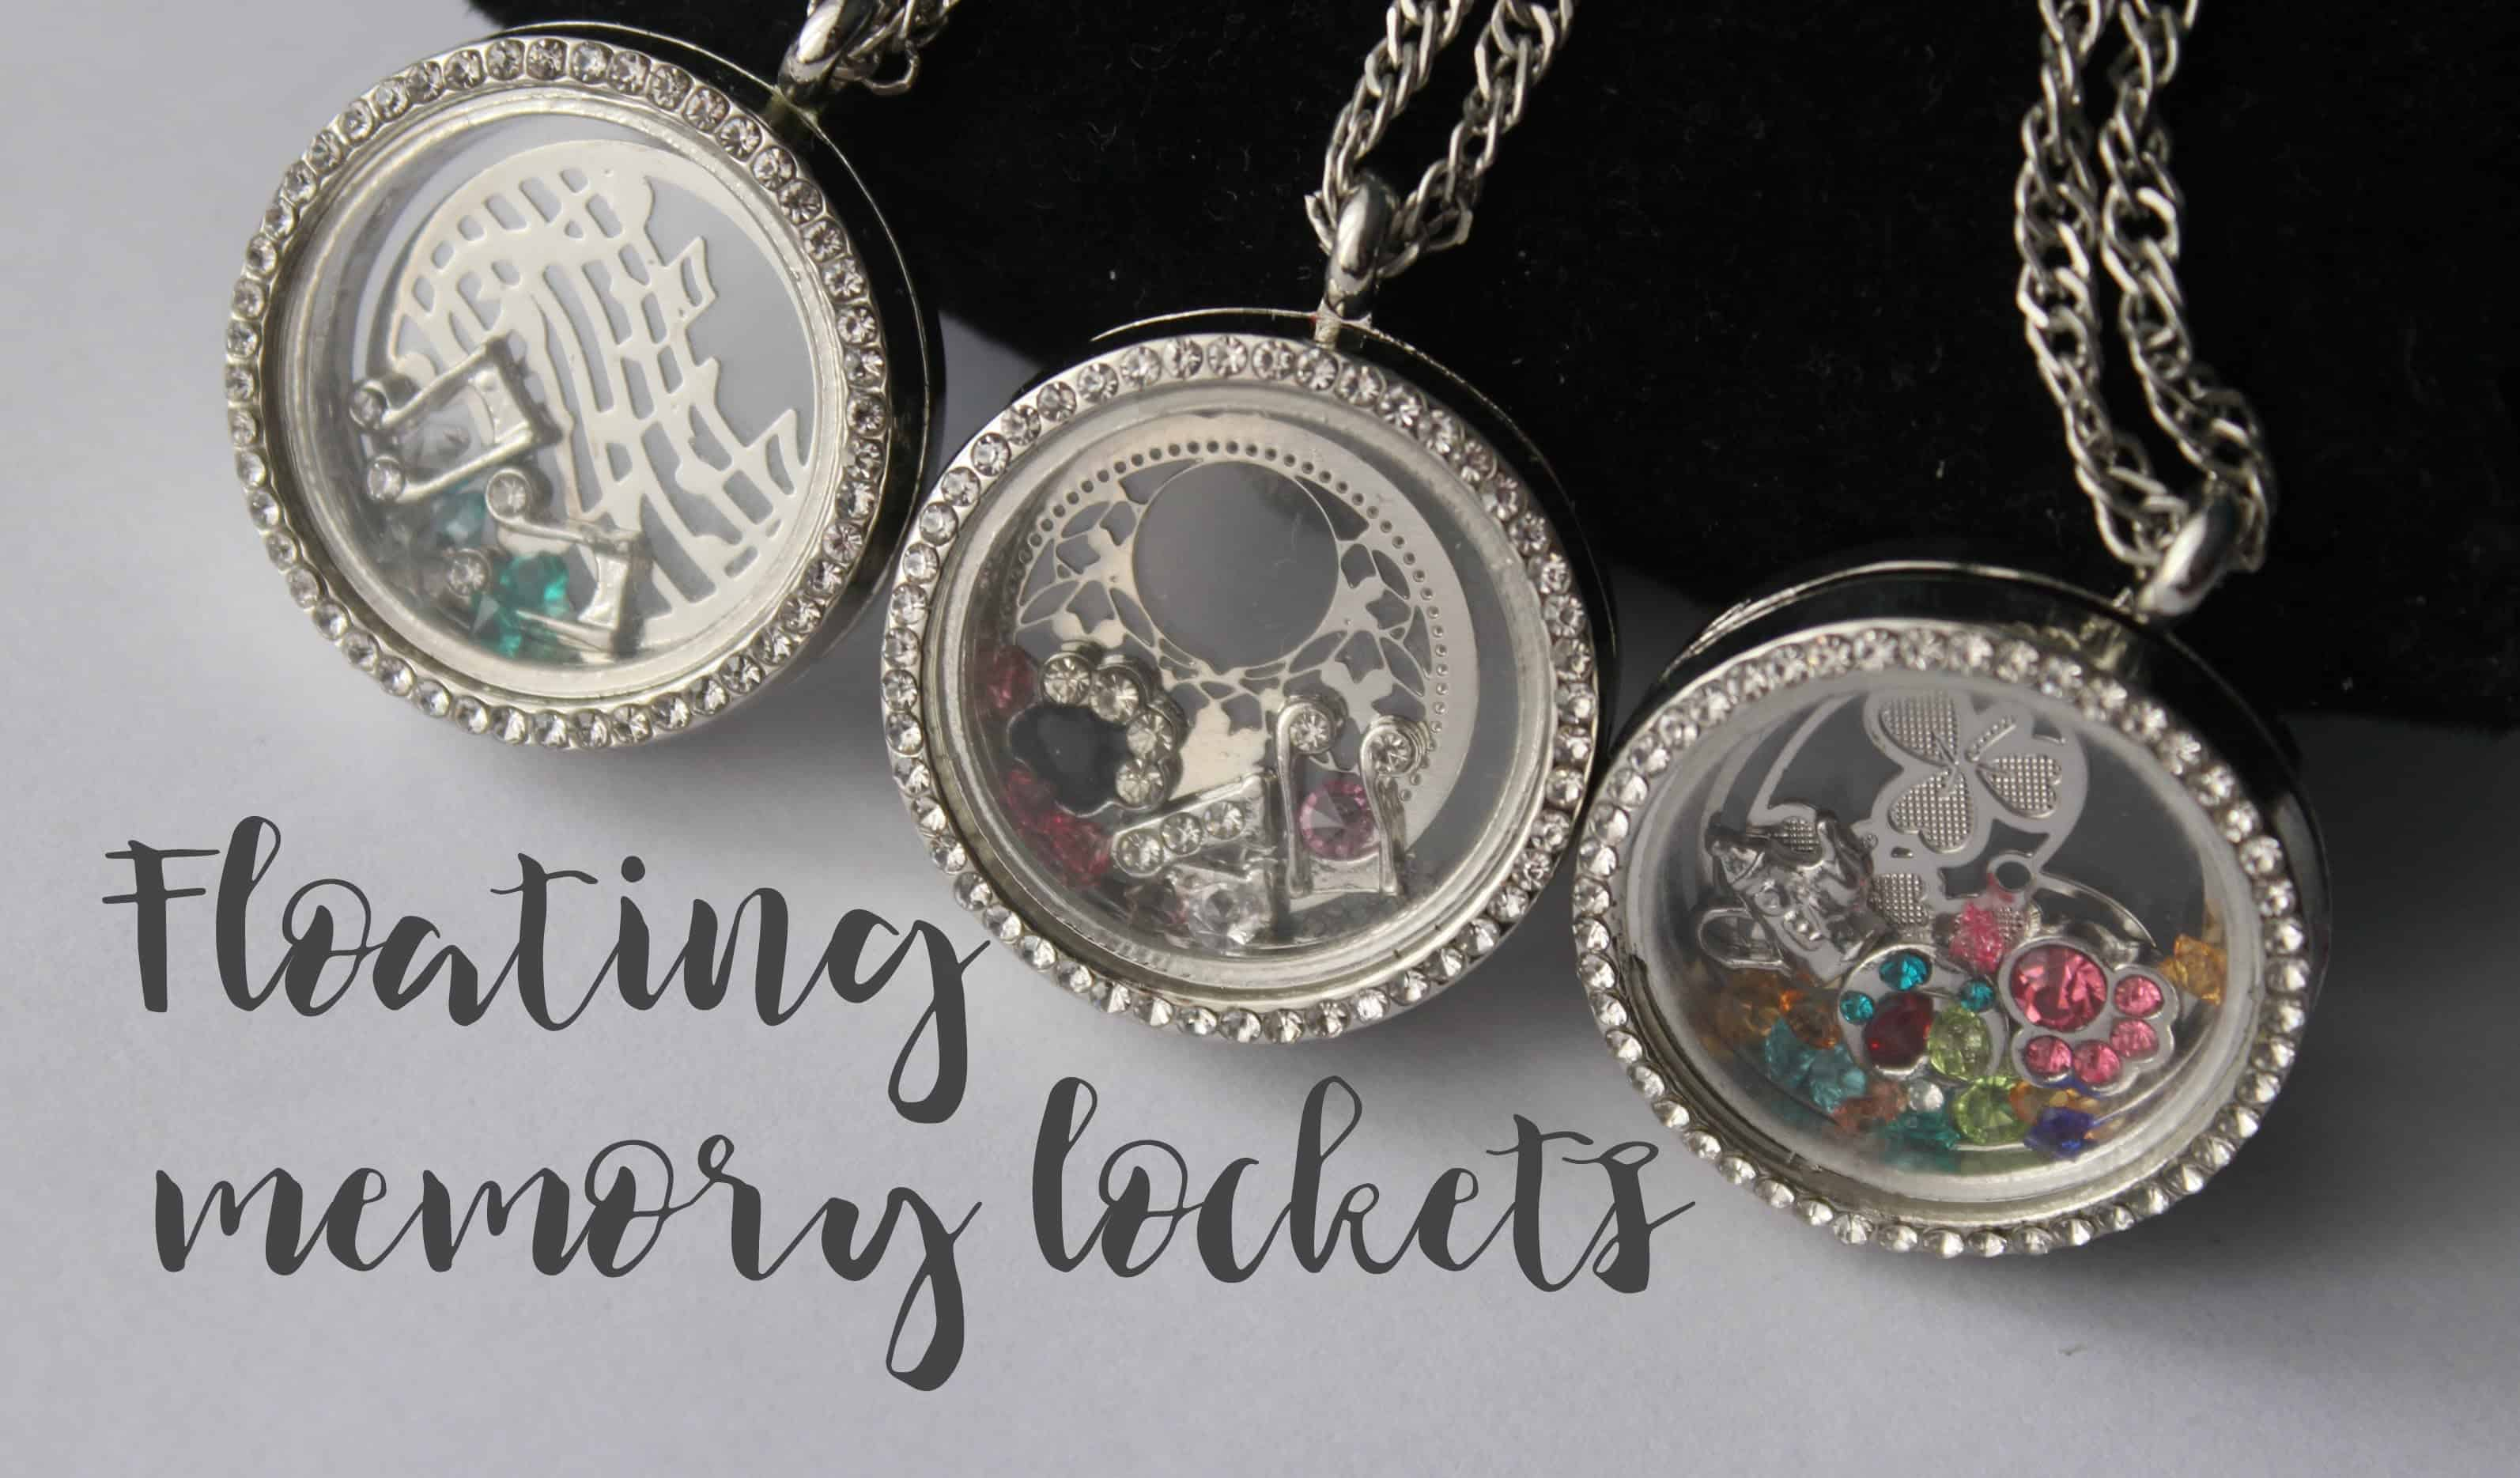 Floating memory lockets